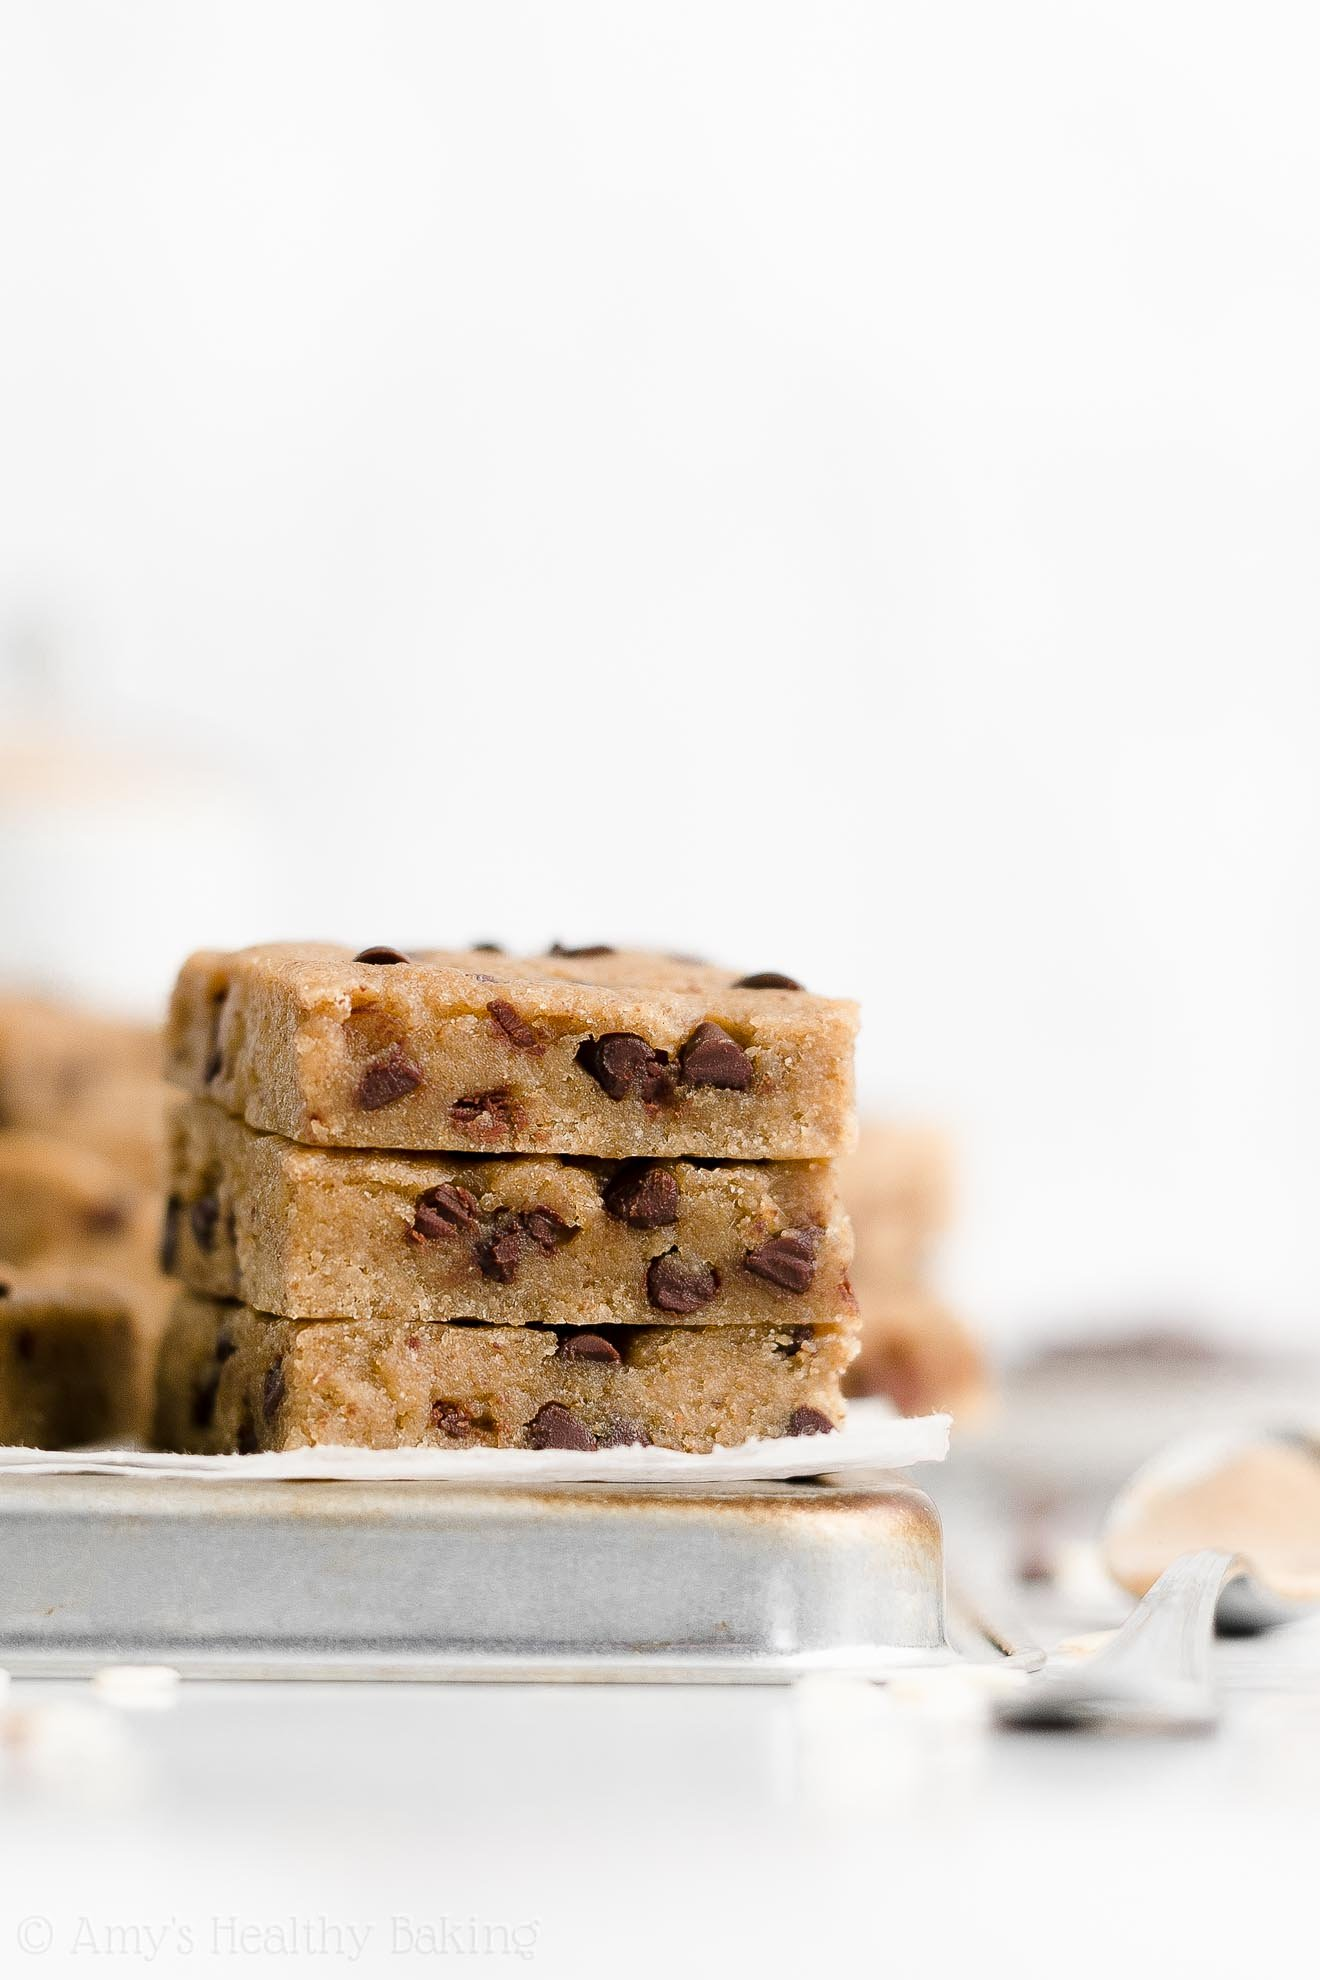 Healthy Weight Watchers Sugar Free Chocolate Chip Almond Butter Cookie Bars